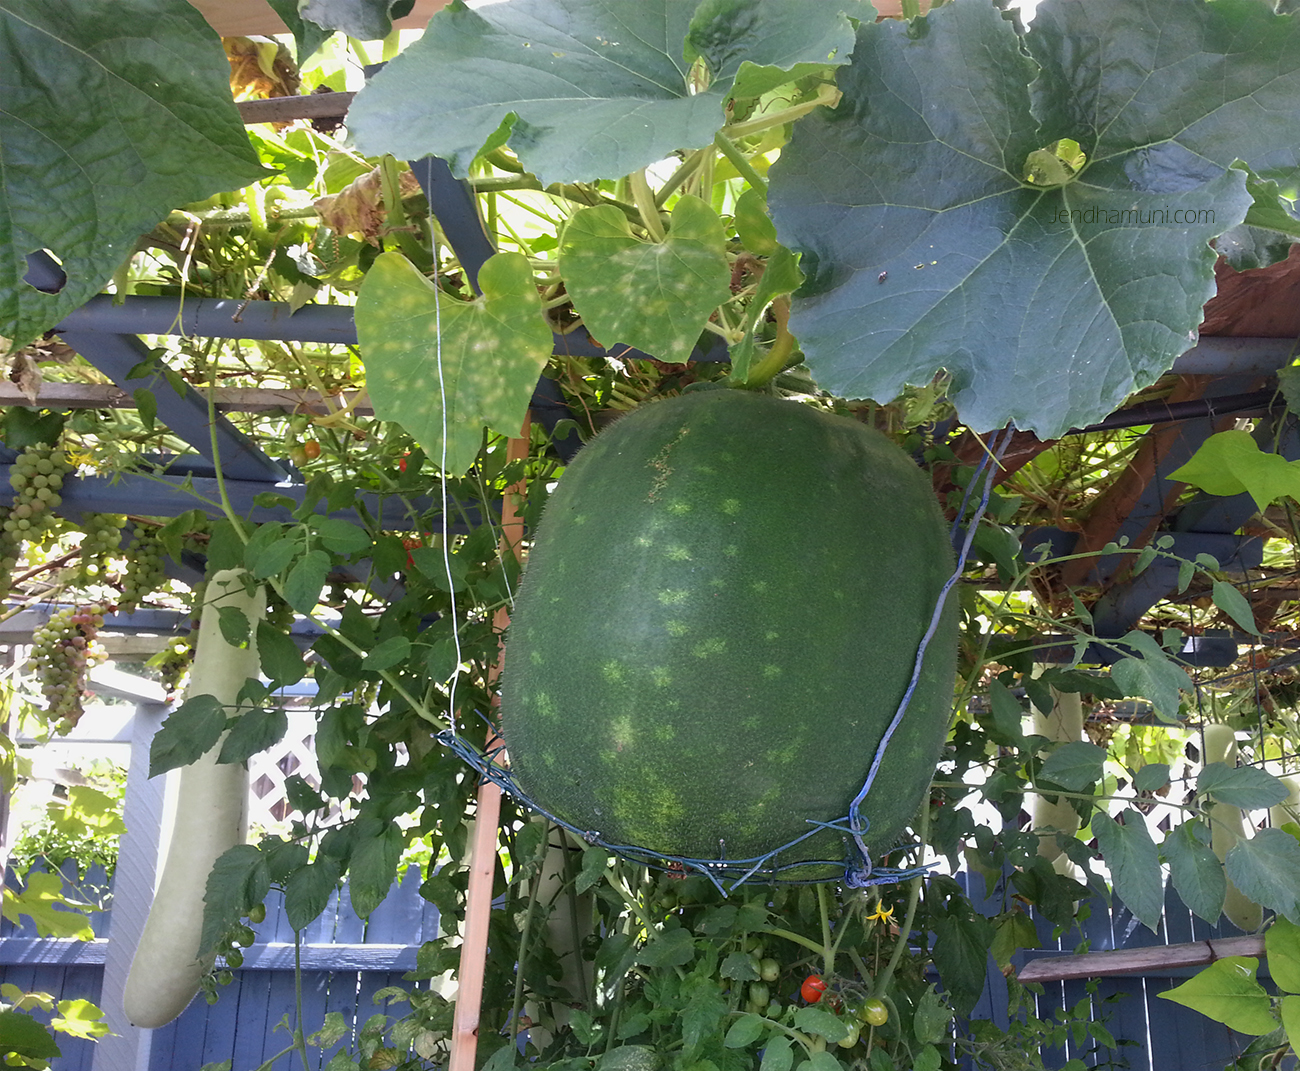 Winter melon in Veggie garden 082915